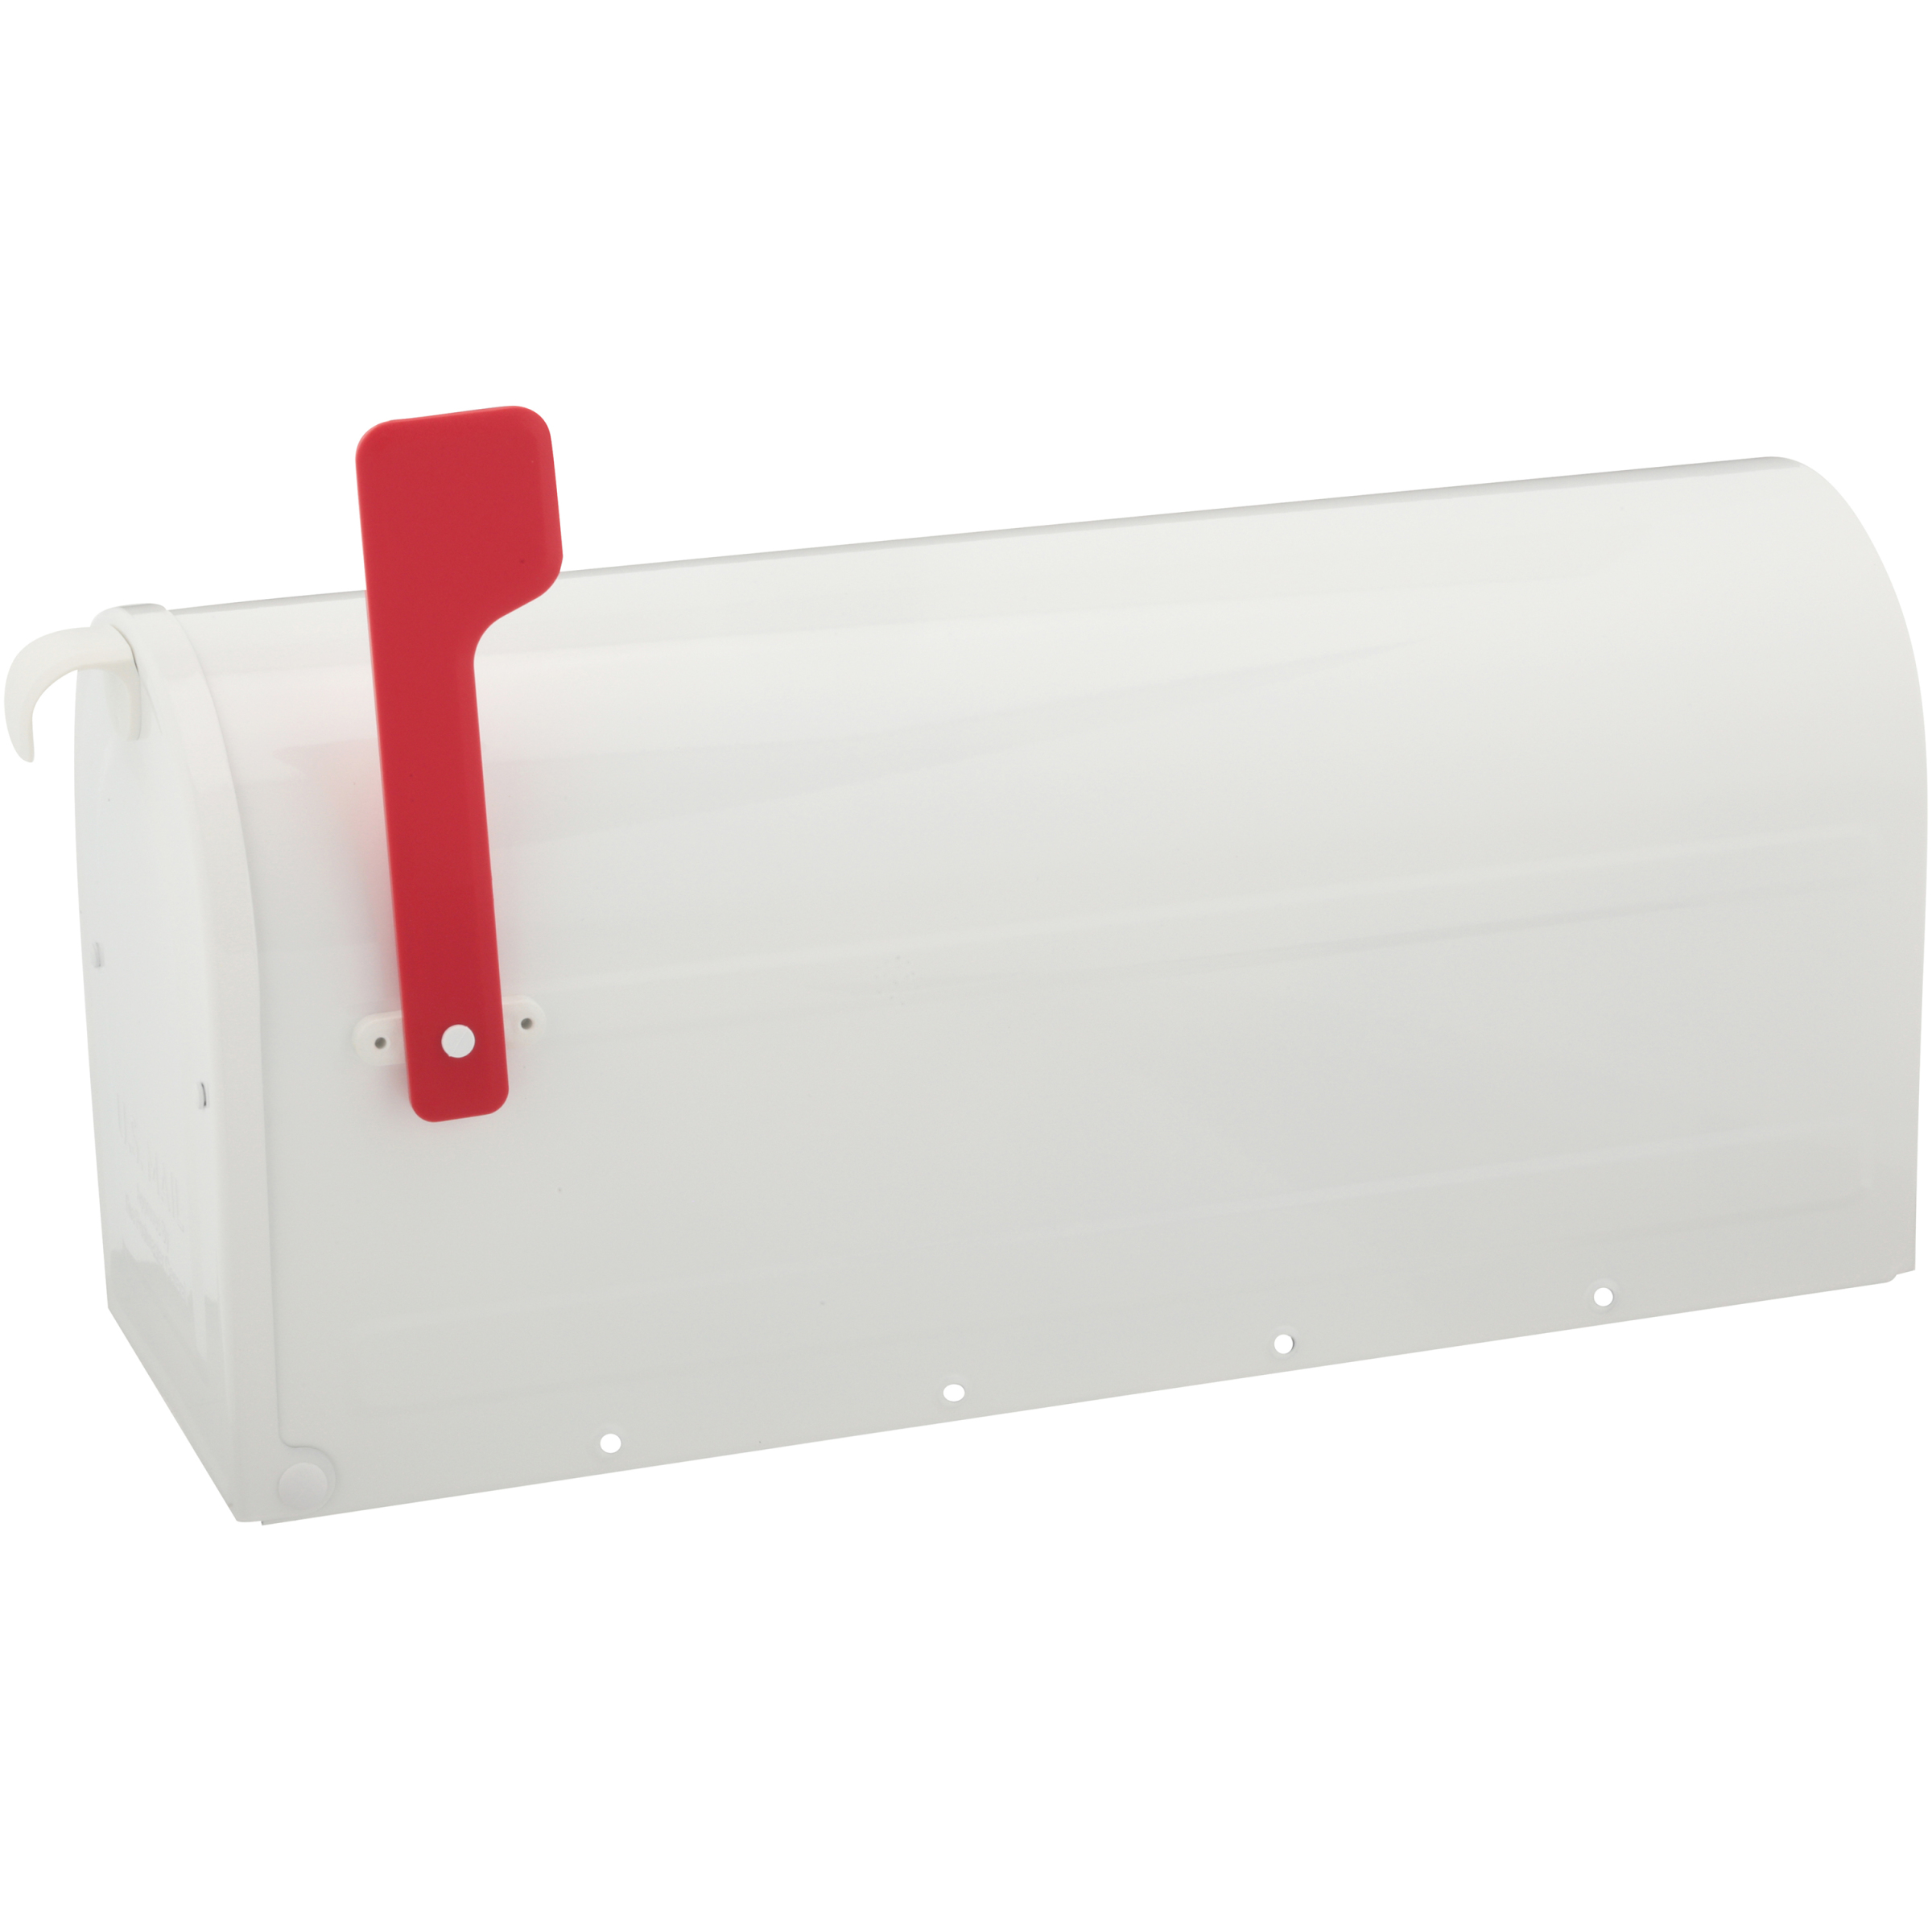 Architectural Mailboxes MB1 Post Mount Mailbox, Assorted Colors by Architectural Mailboxes